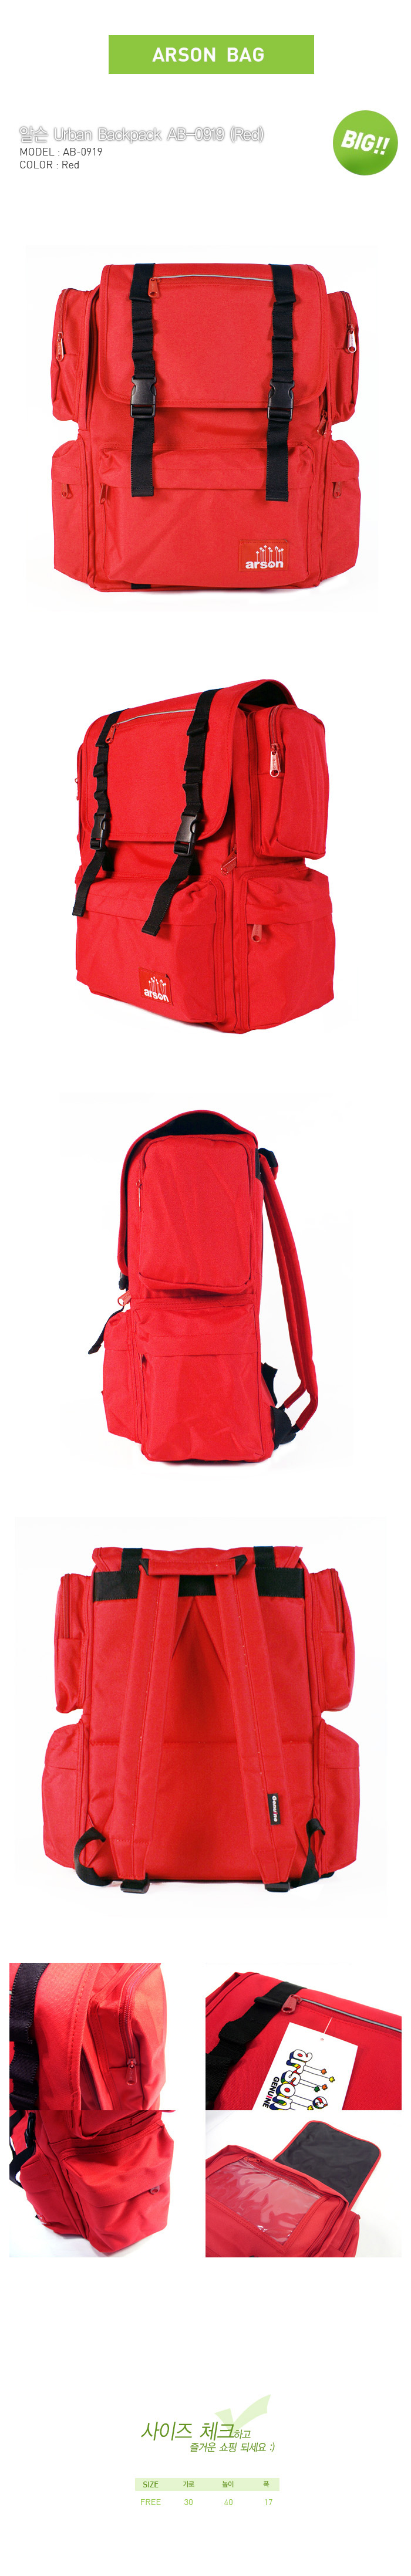 [ ARSON ] AB-0919 (Red)/Backpack School Bag